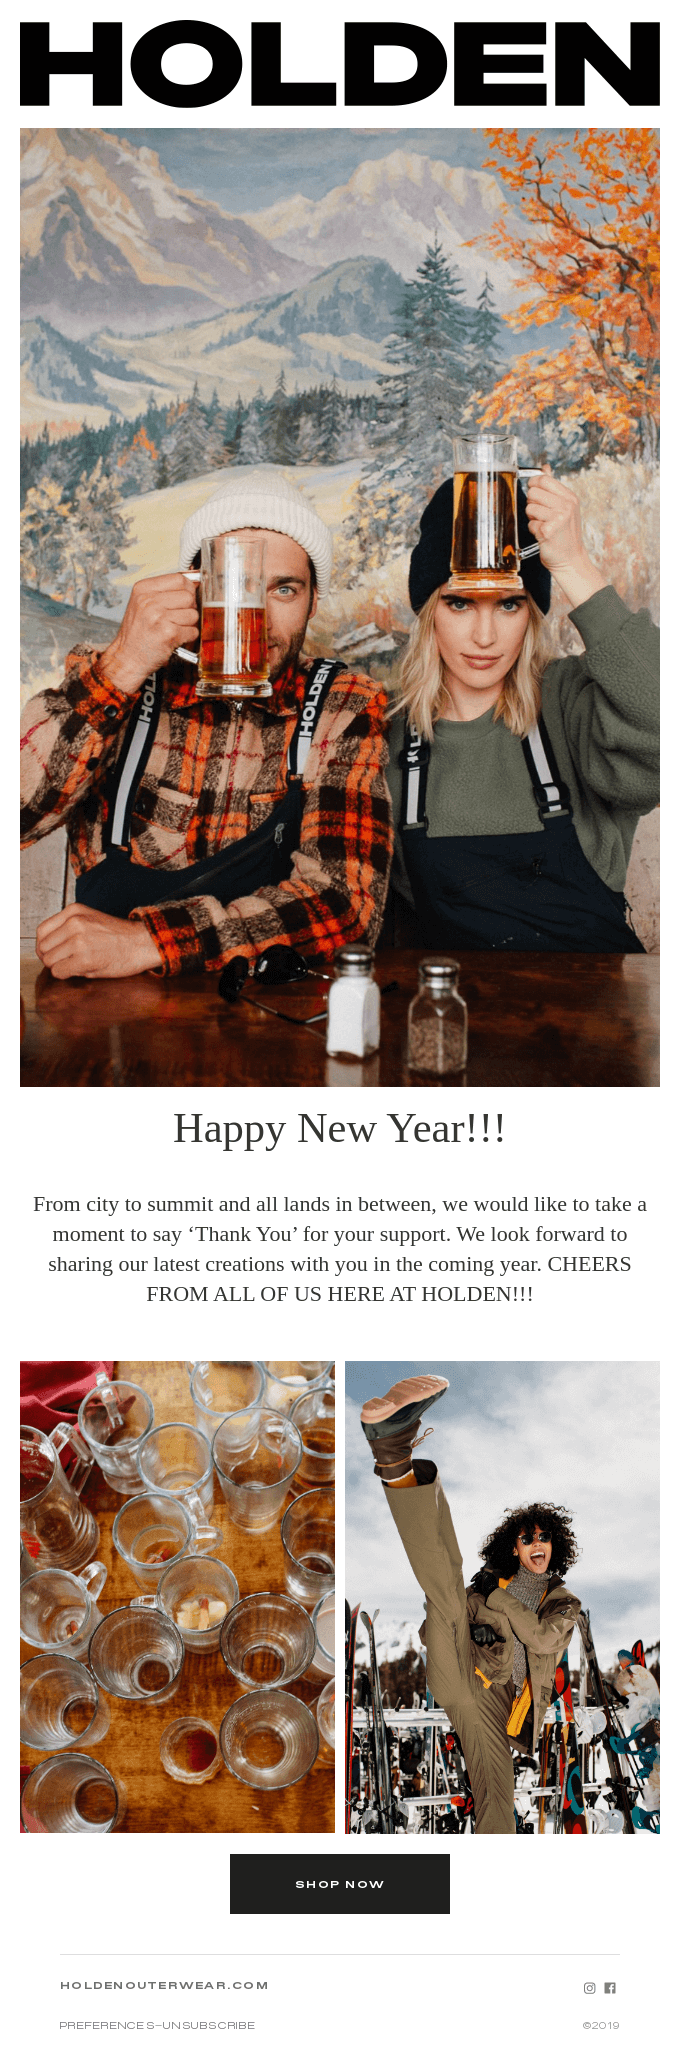 Example of a New Year's email from Holden.